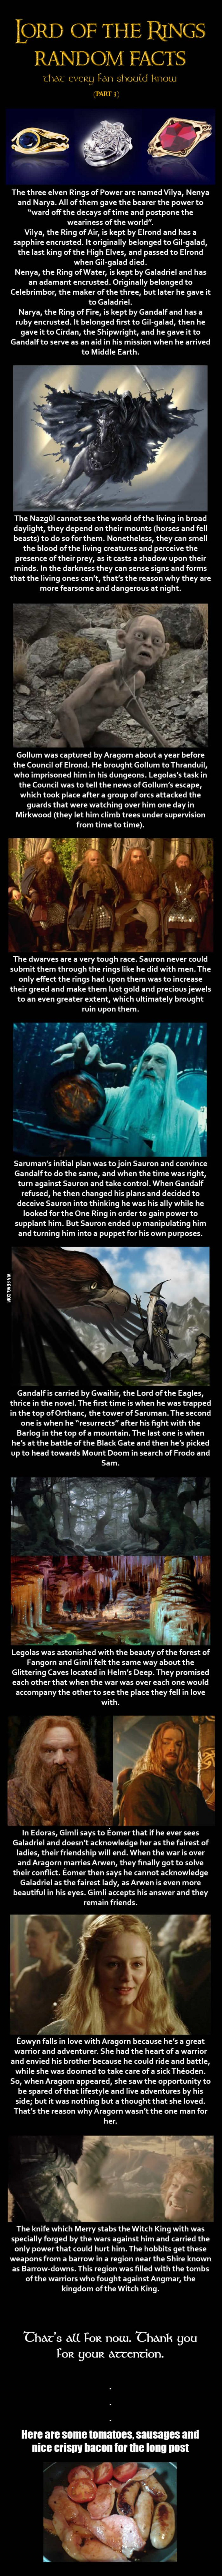 Here are some Lord of the Rings random facts (Part 3 of 8)